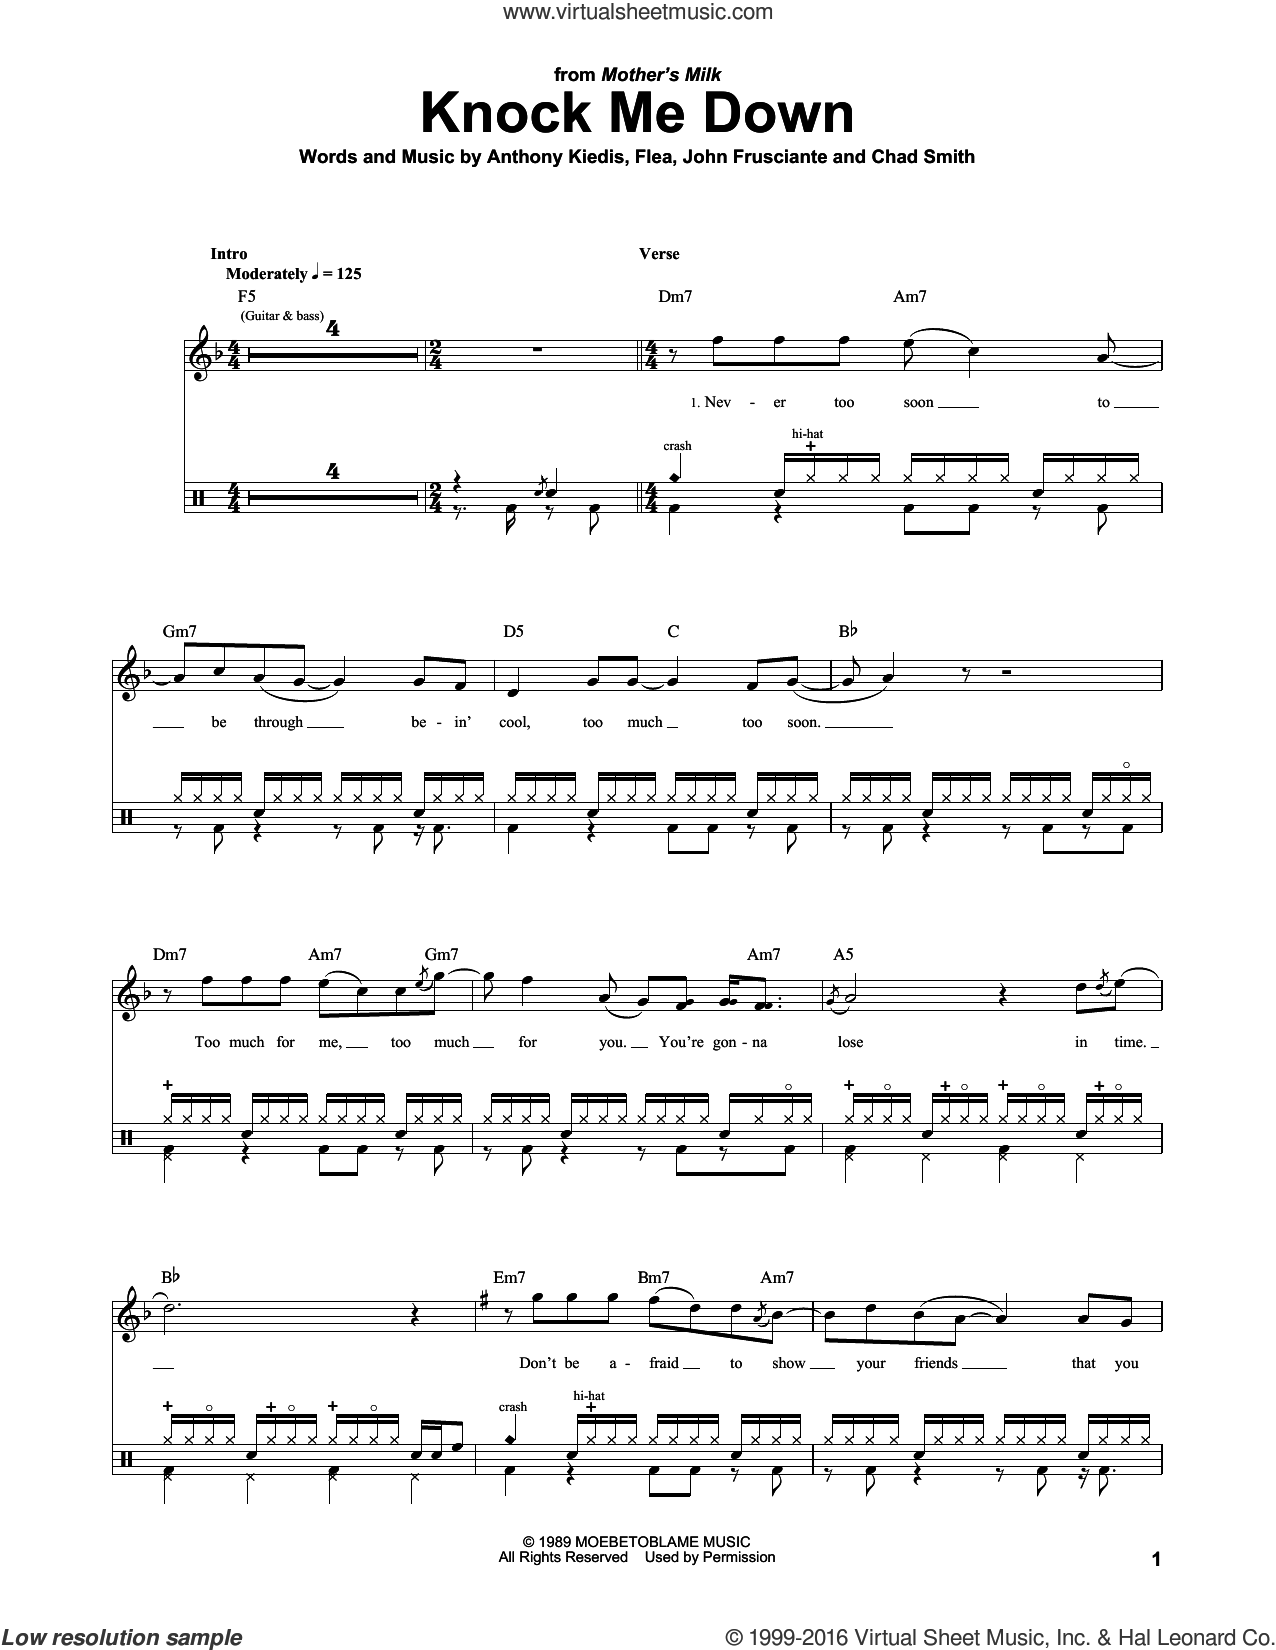 Knock Me Down sheet music for drums by Red Hot Chili Peppers, Anthony Kiedis, Chad Smith, Flea and John Frusciante, intermediate skill level